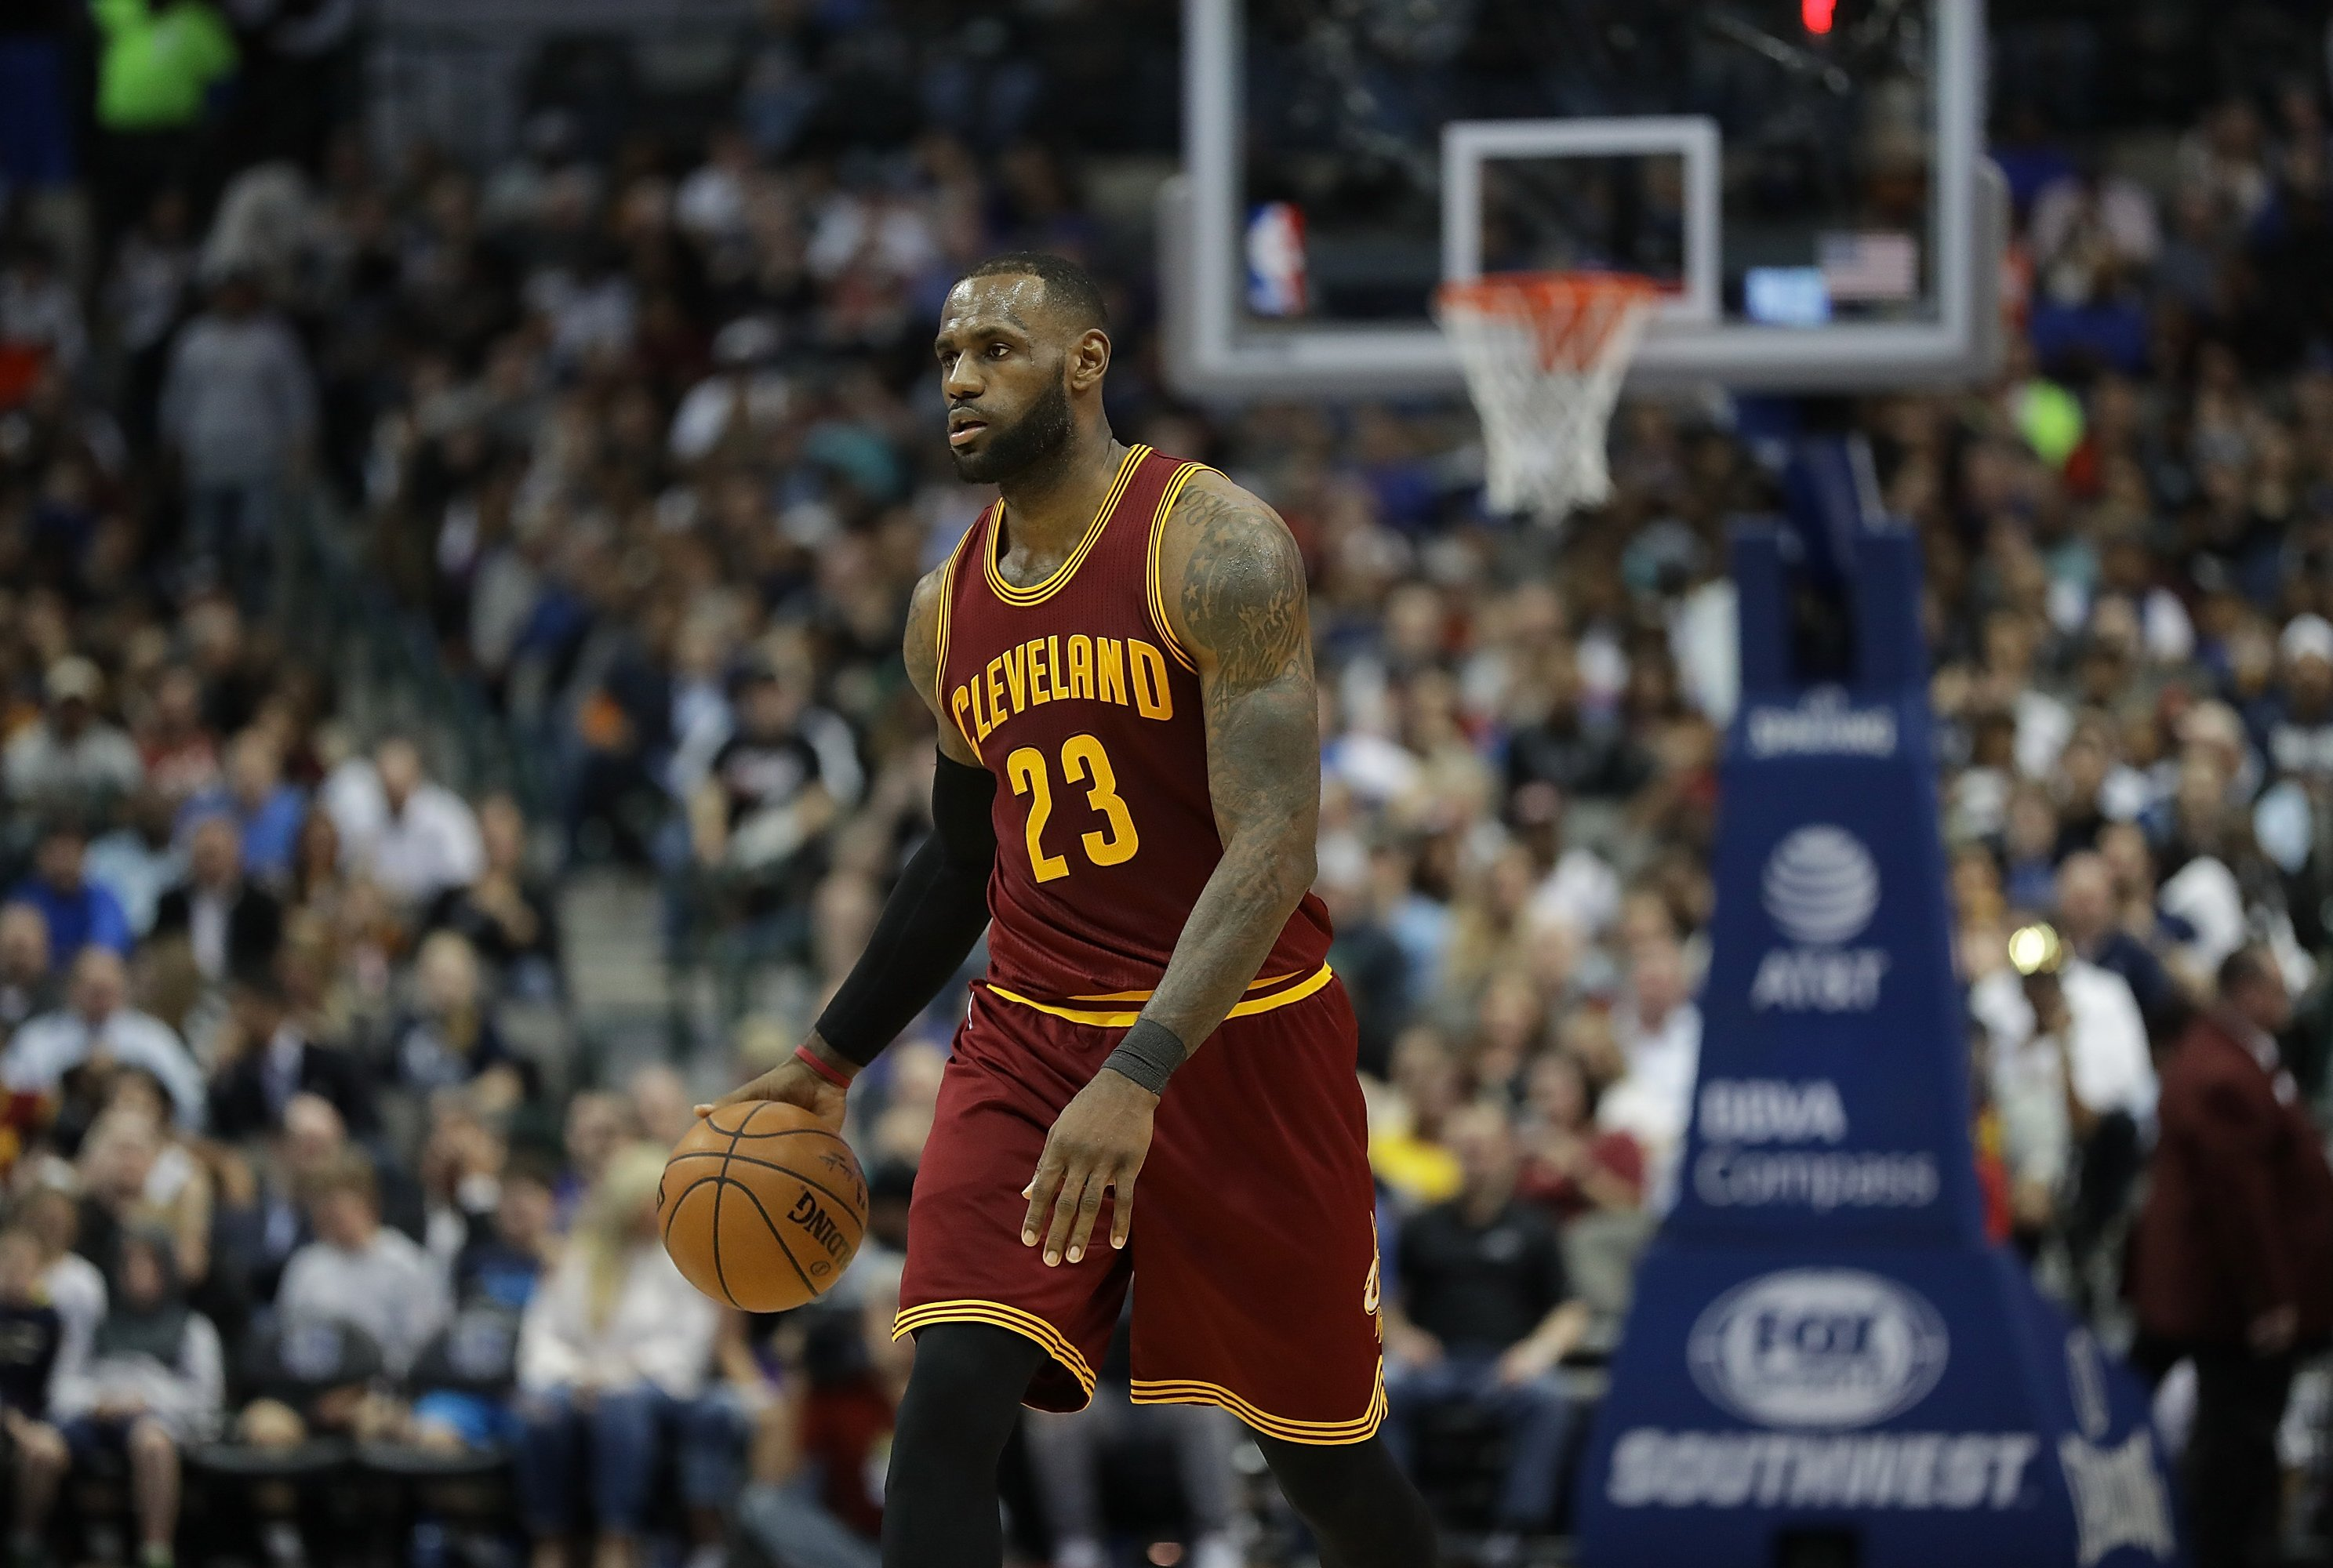 dce4492c4268 Metrics 101: The NBA's GOAT at Every Position | Bleacher Report | Latest  News, Videos and Highlights